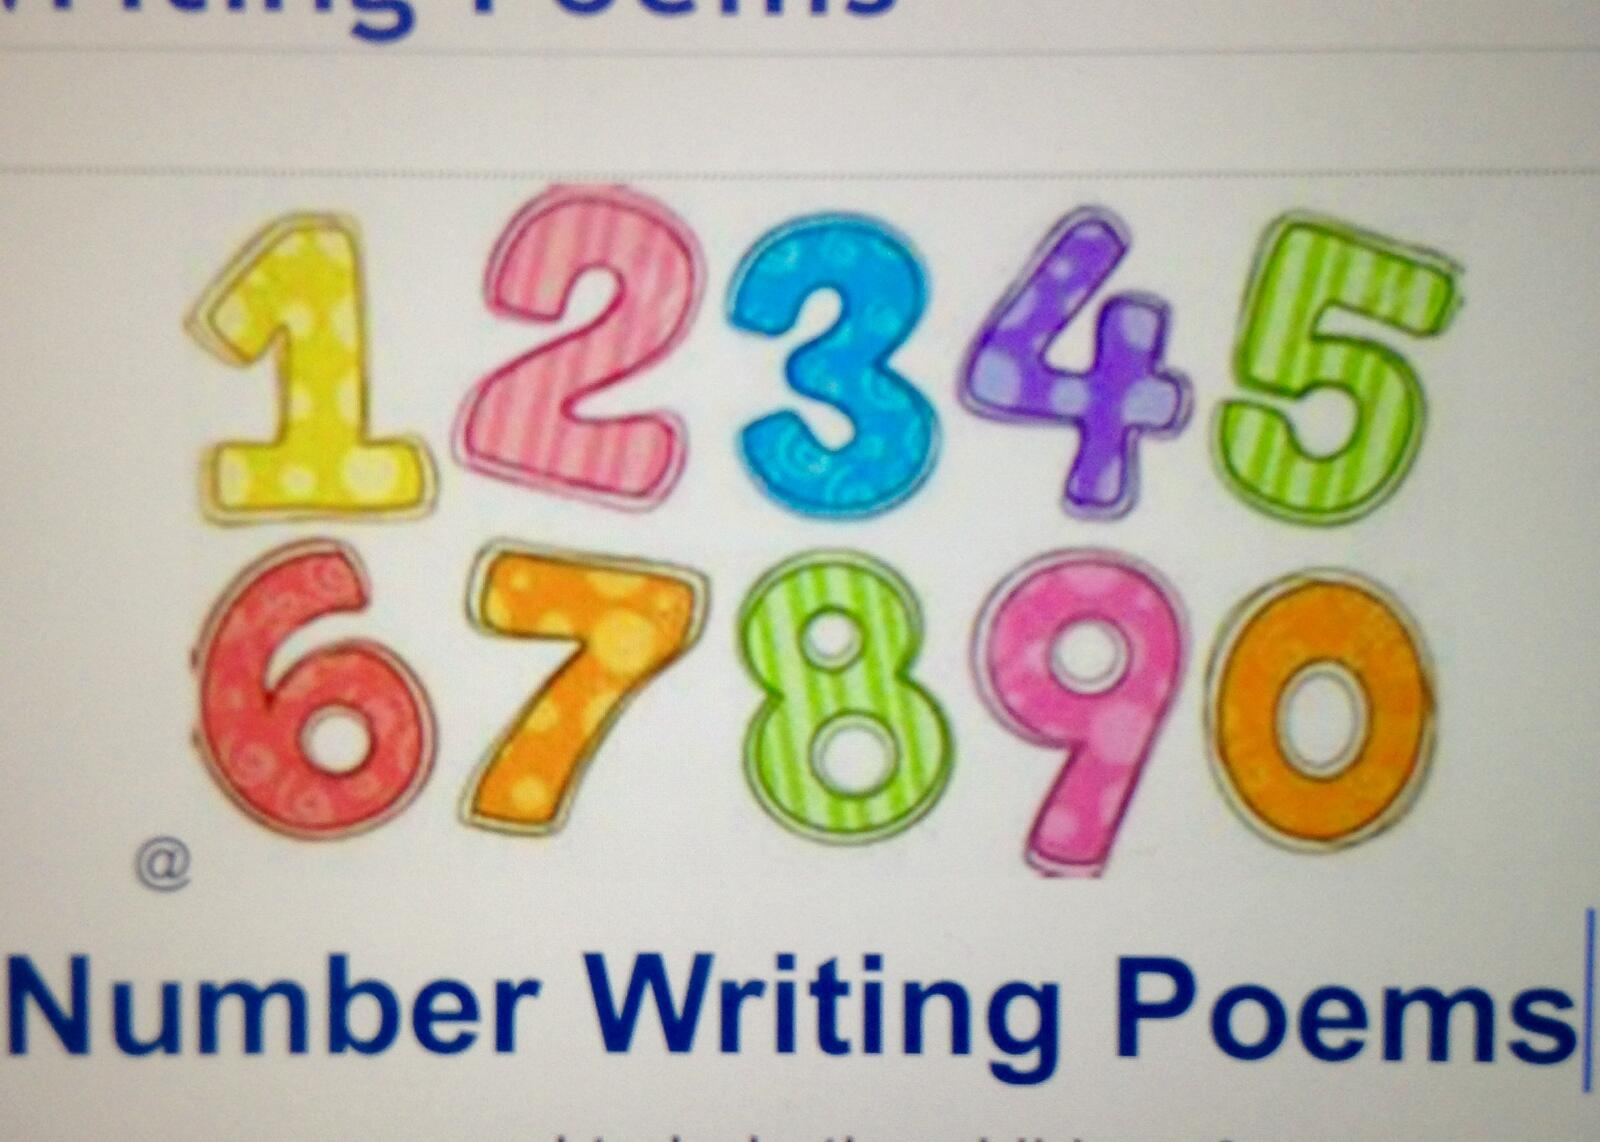 number writing poems These number writing poems are provided for your use in classrooms, home settings, day-cares, or wherever you may need them the.